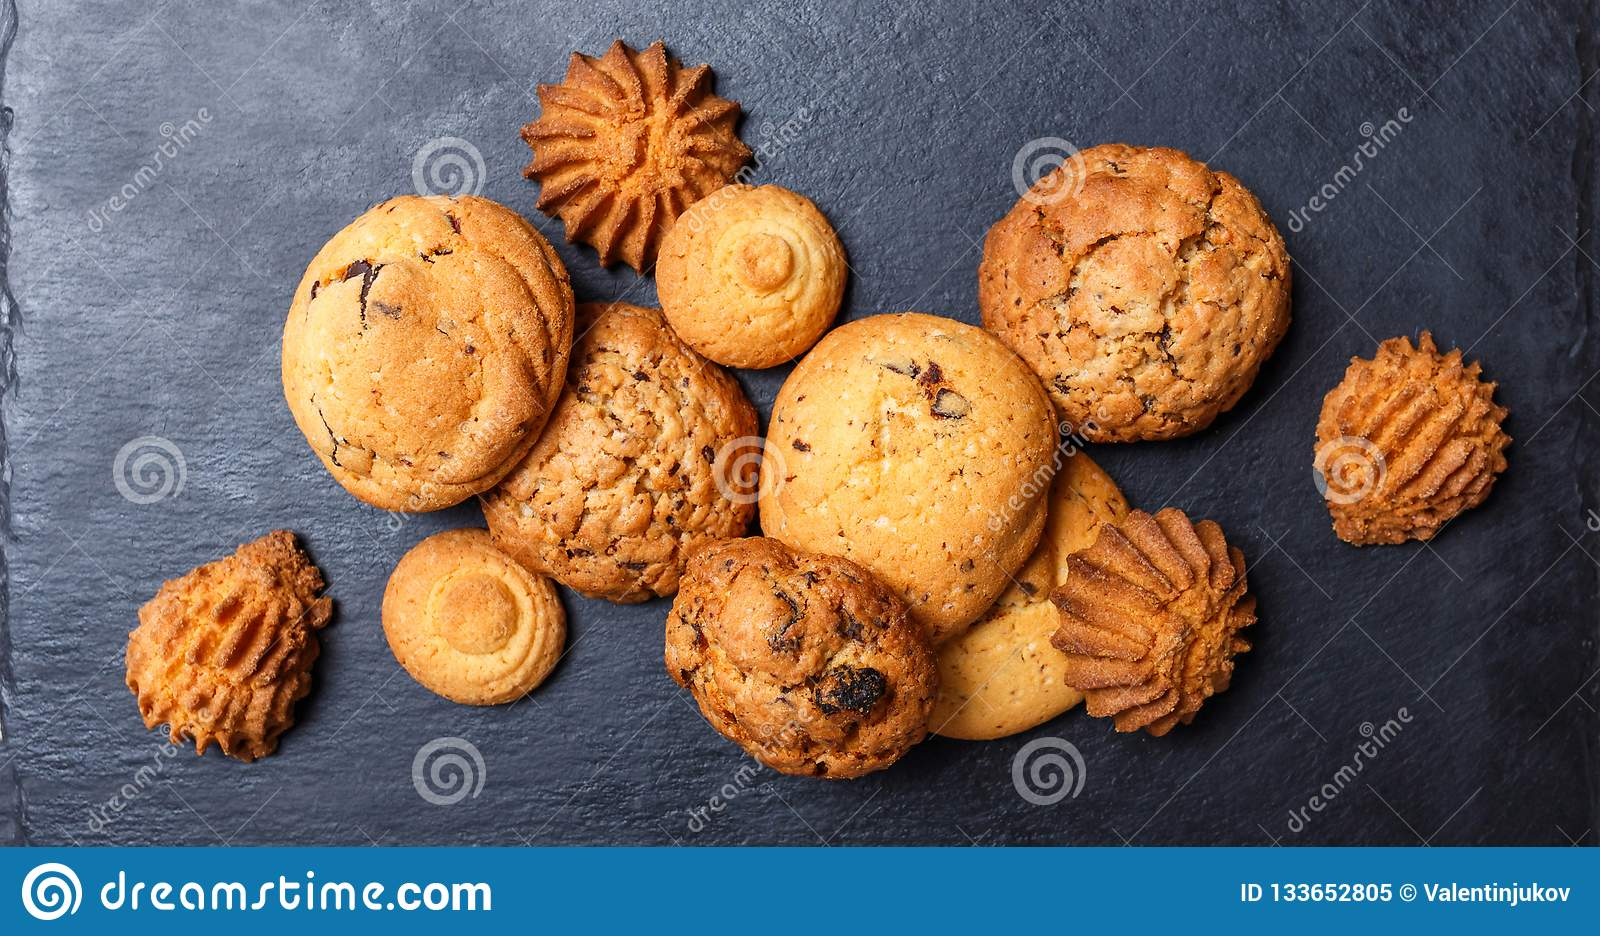 Assorted cookies with chocolate chip, oatmeal raisin on stone slate background on wooden background close up. Homemade baking.